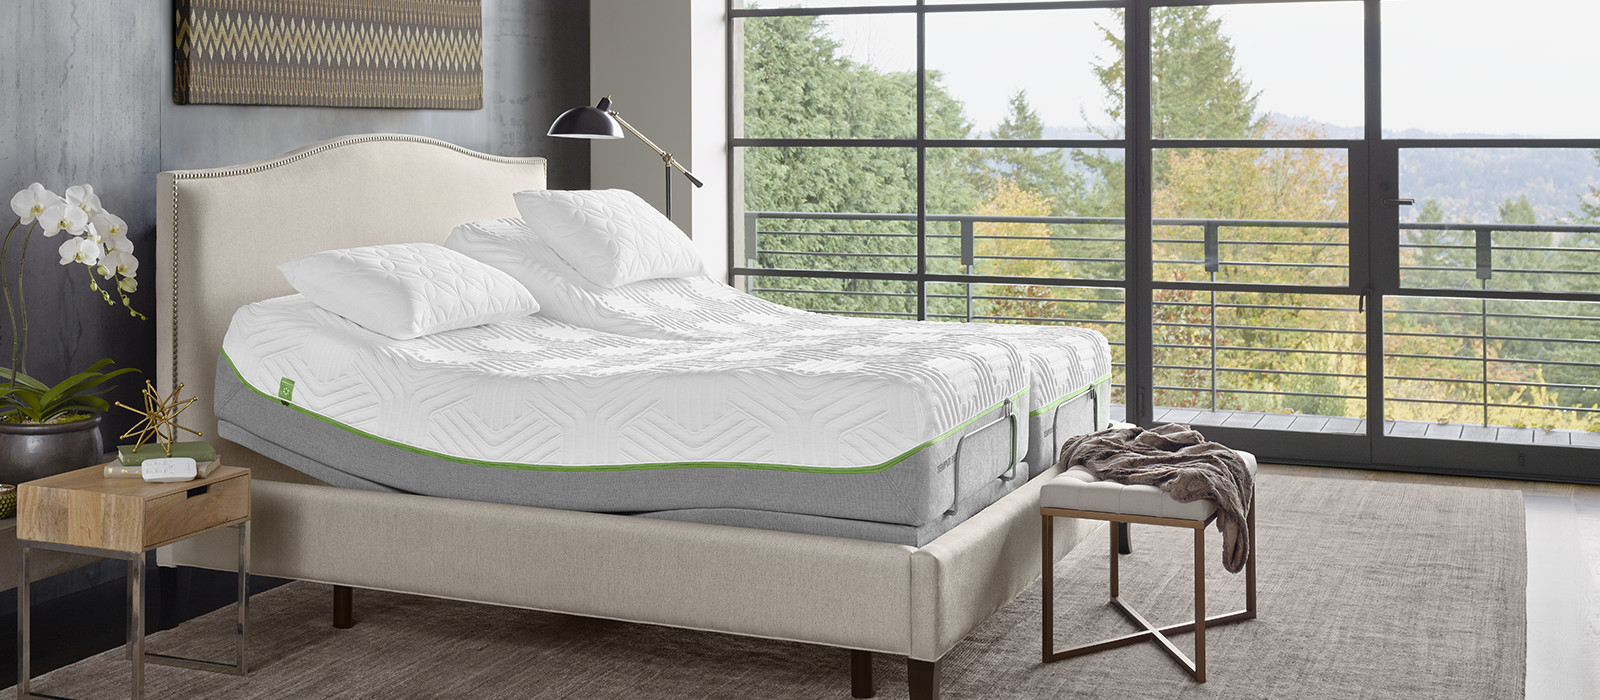 TEMPUR Ergo Plus Adjustable Base | Tempur Pedic ?